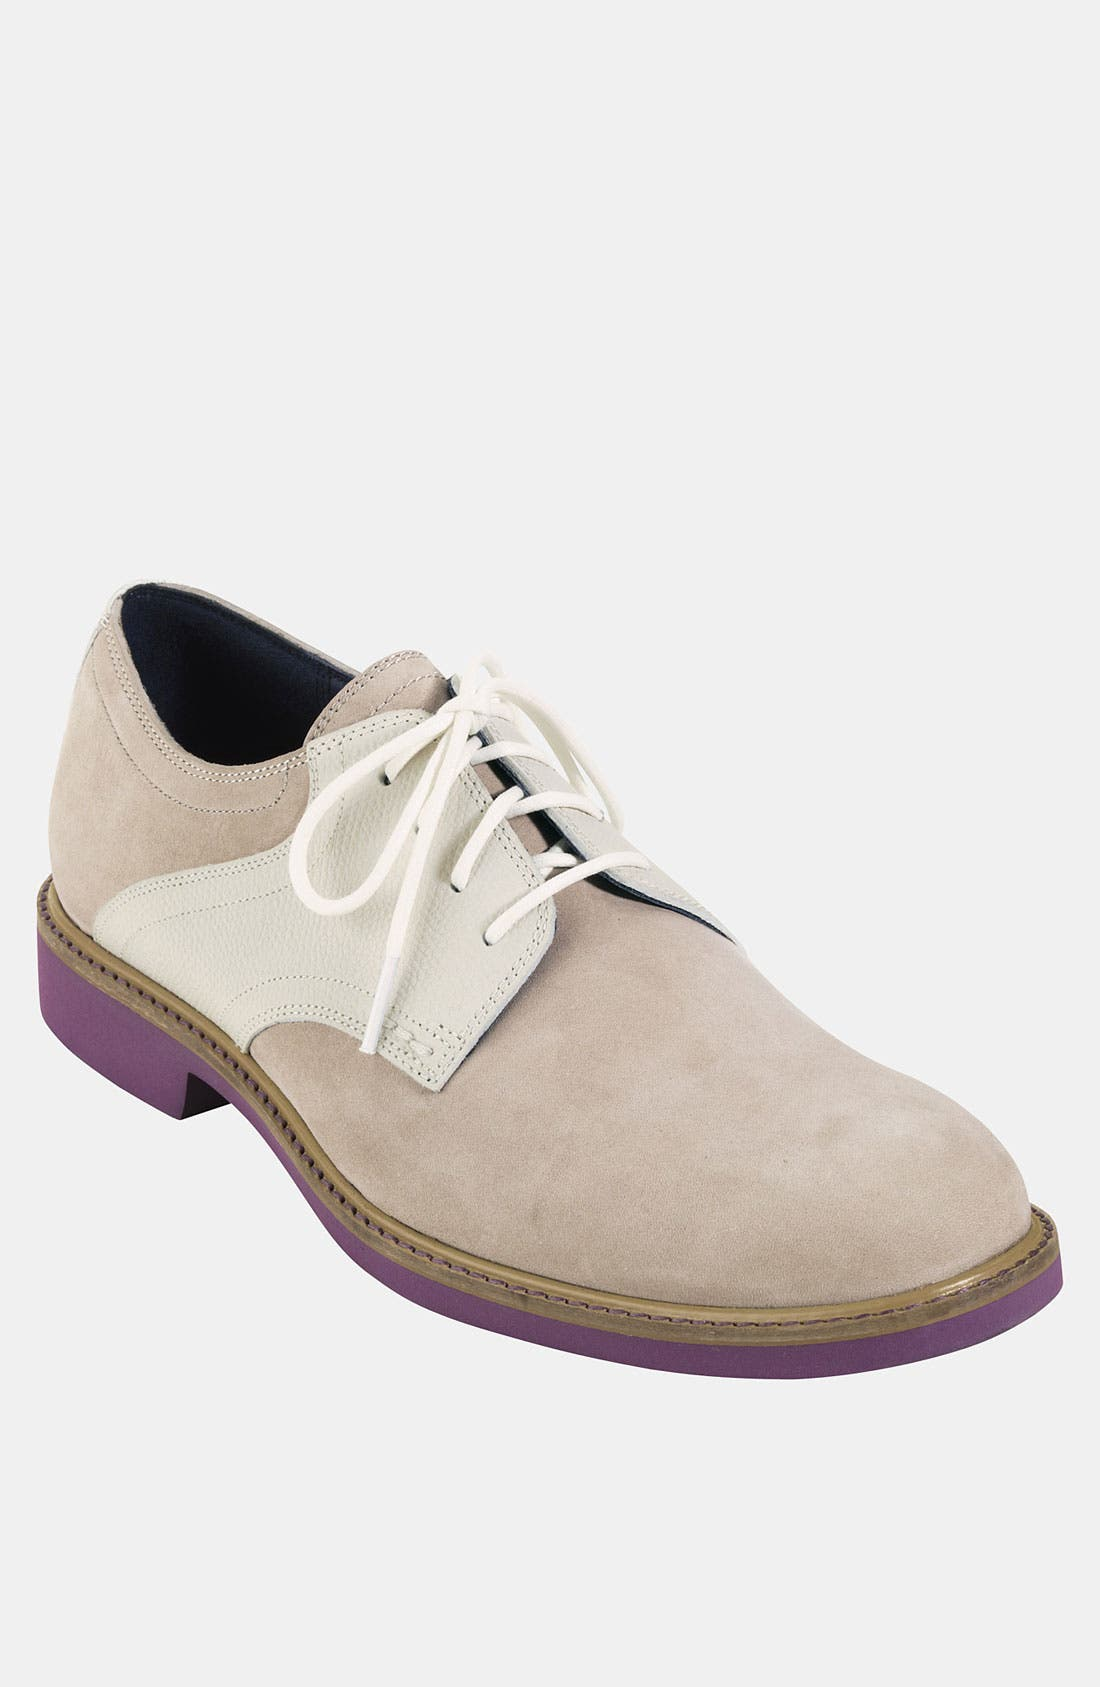 Alternate Image 1 Selected - Cole Haan 'Great Jones' Saddle Shoe